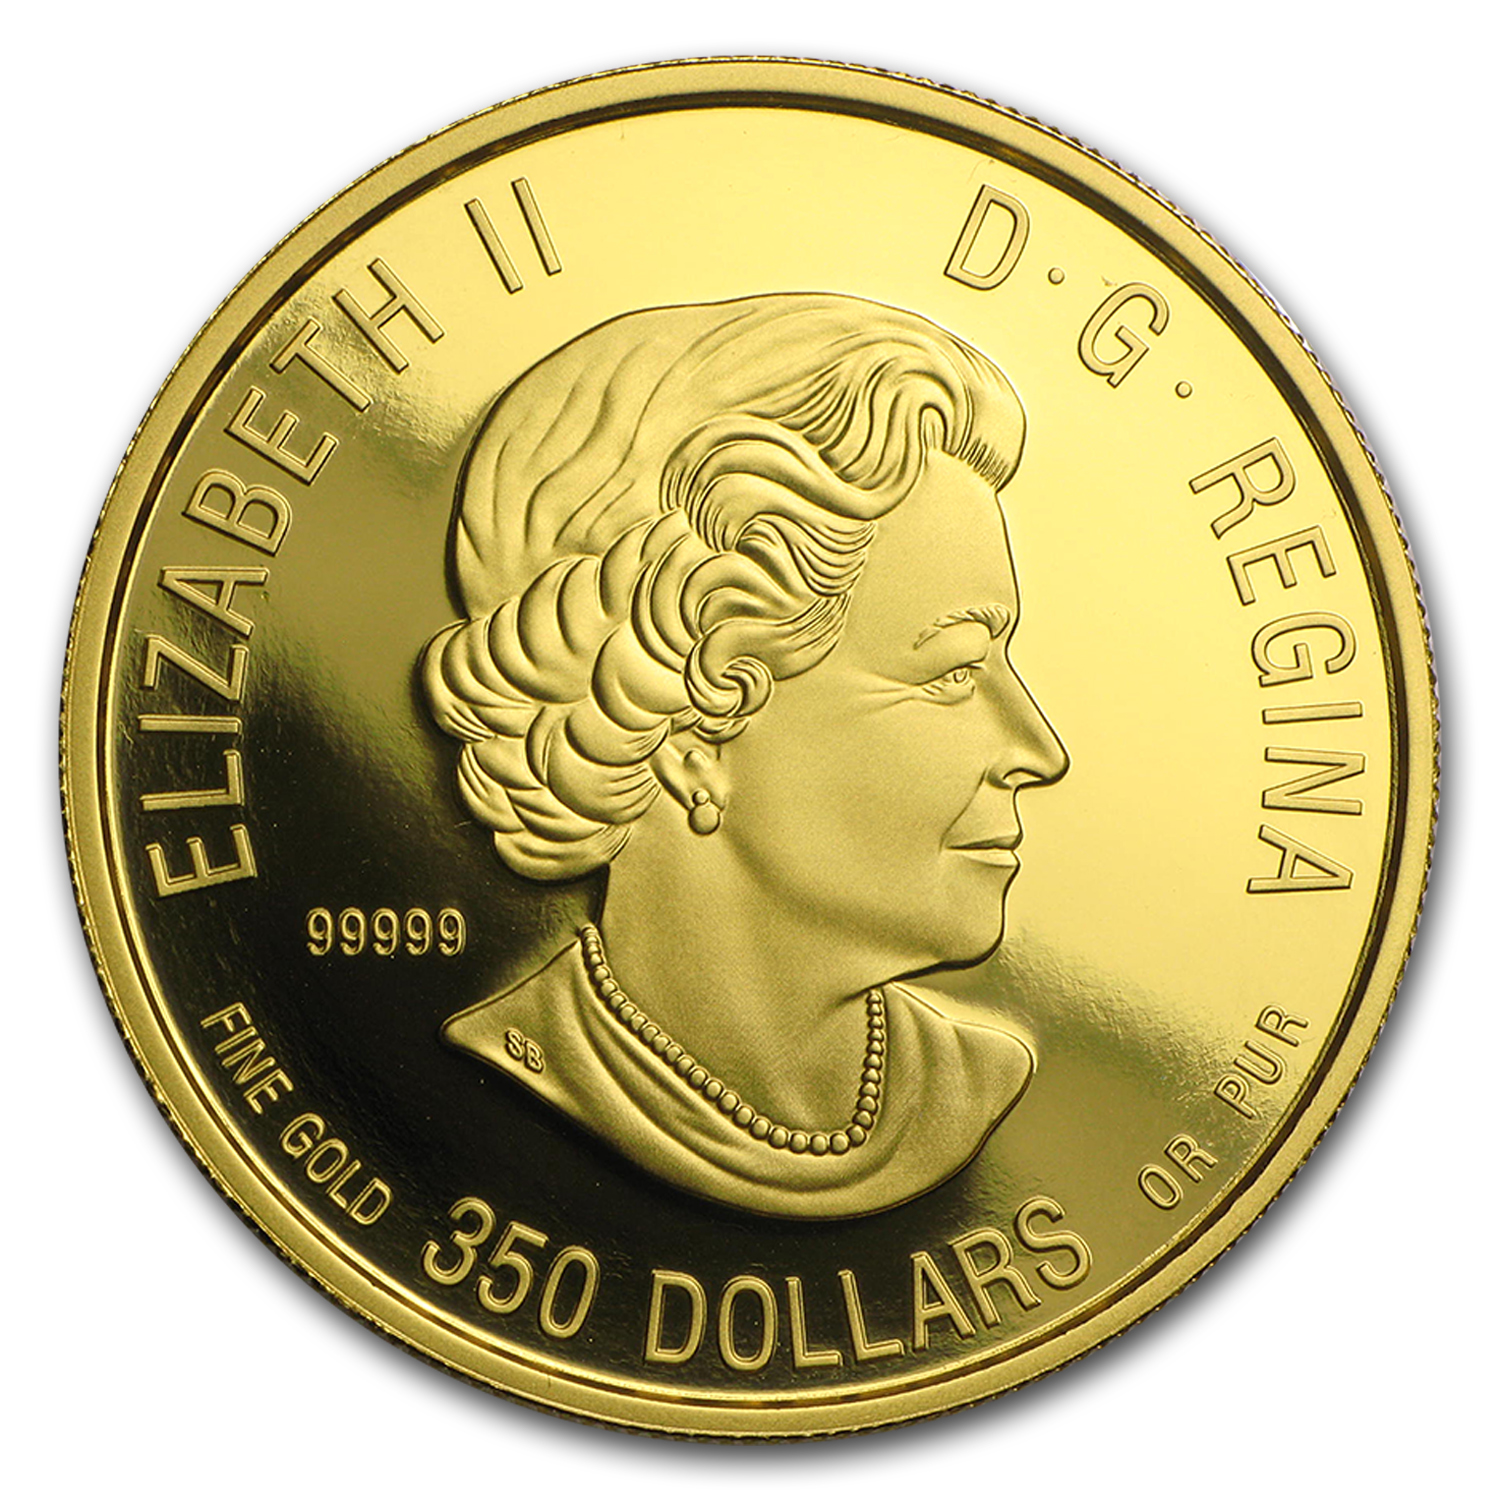 2015 Canada 1 oz Proof Gold $350 Alpha Wolf